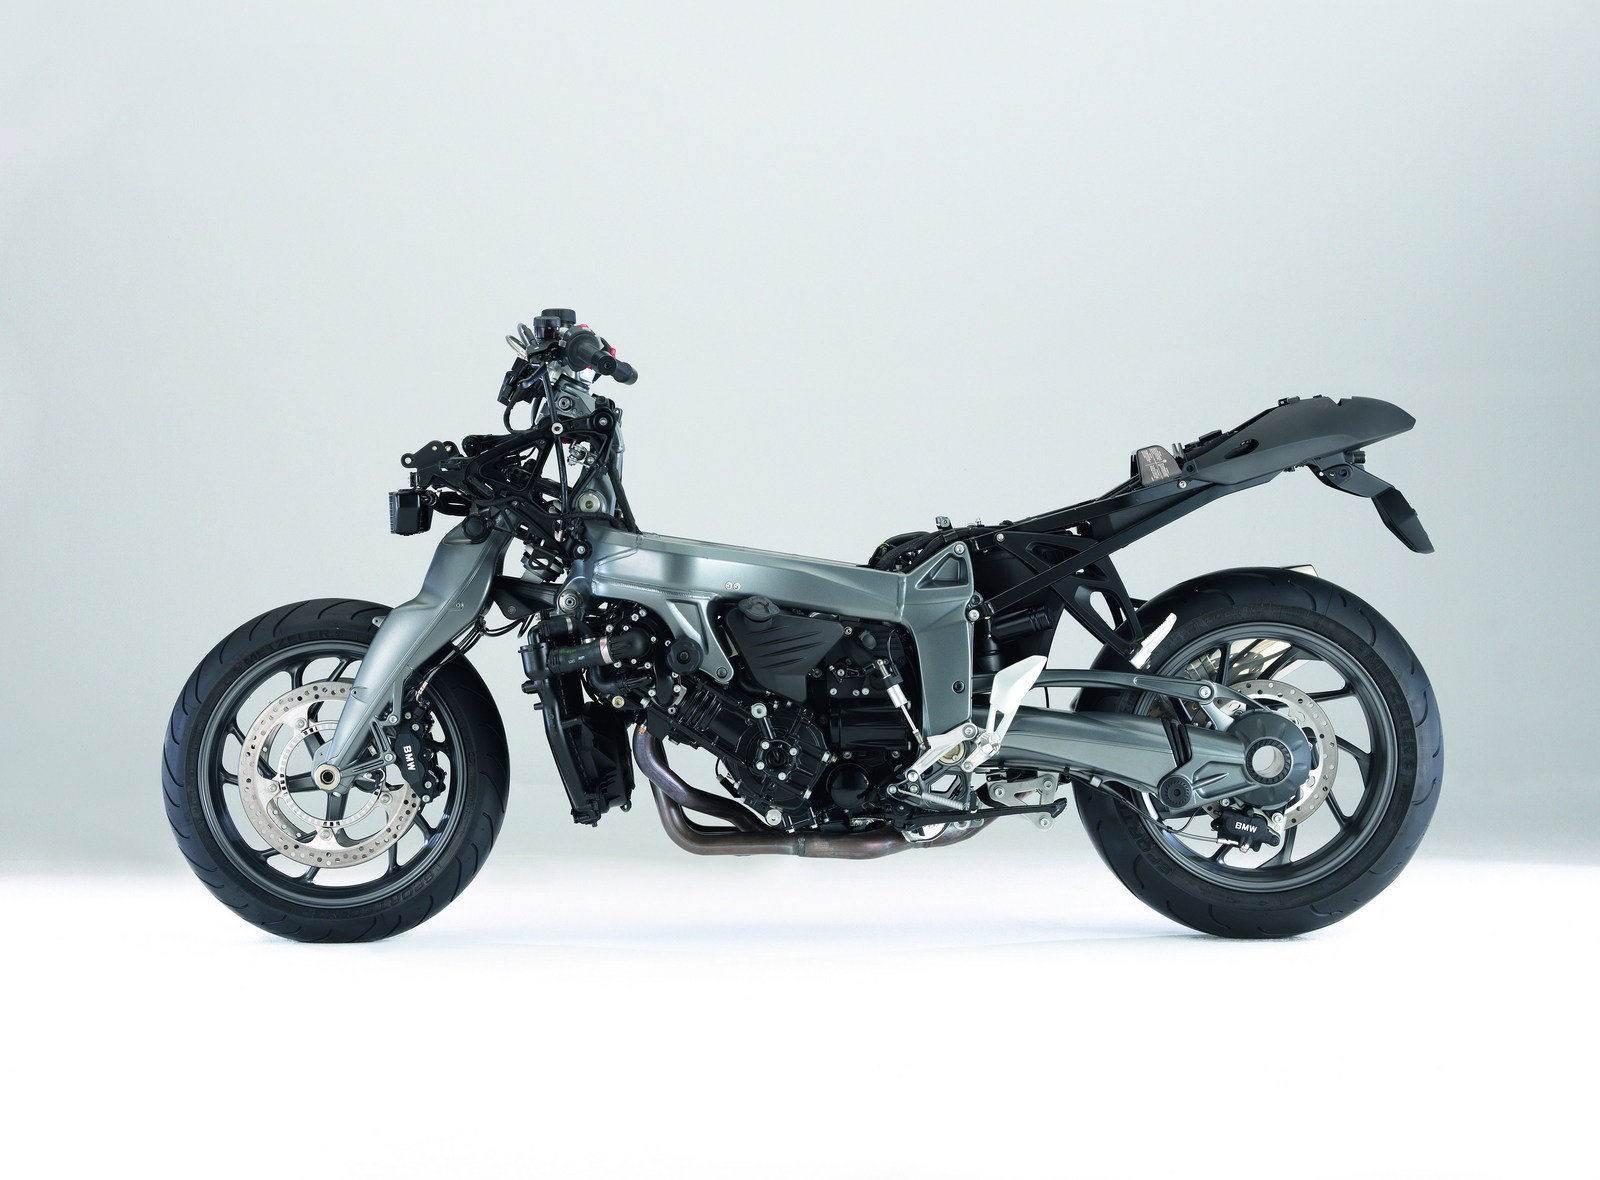 2009 bmw k 1300 r picture 302882 motorcycle review top speed. Black Bedroom Furniture Sets. Home Design Ideas